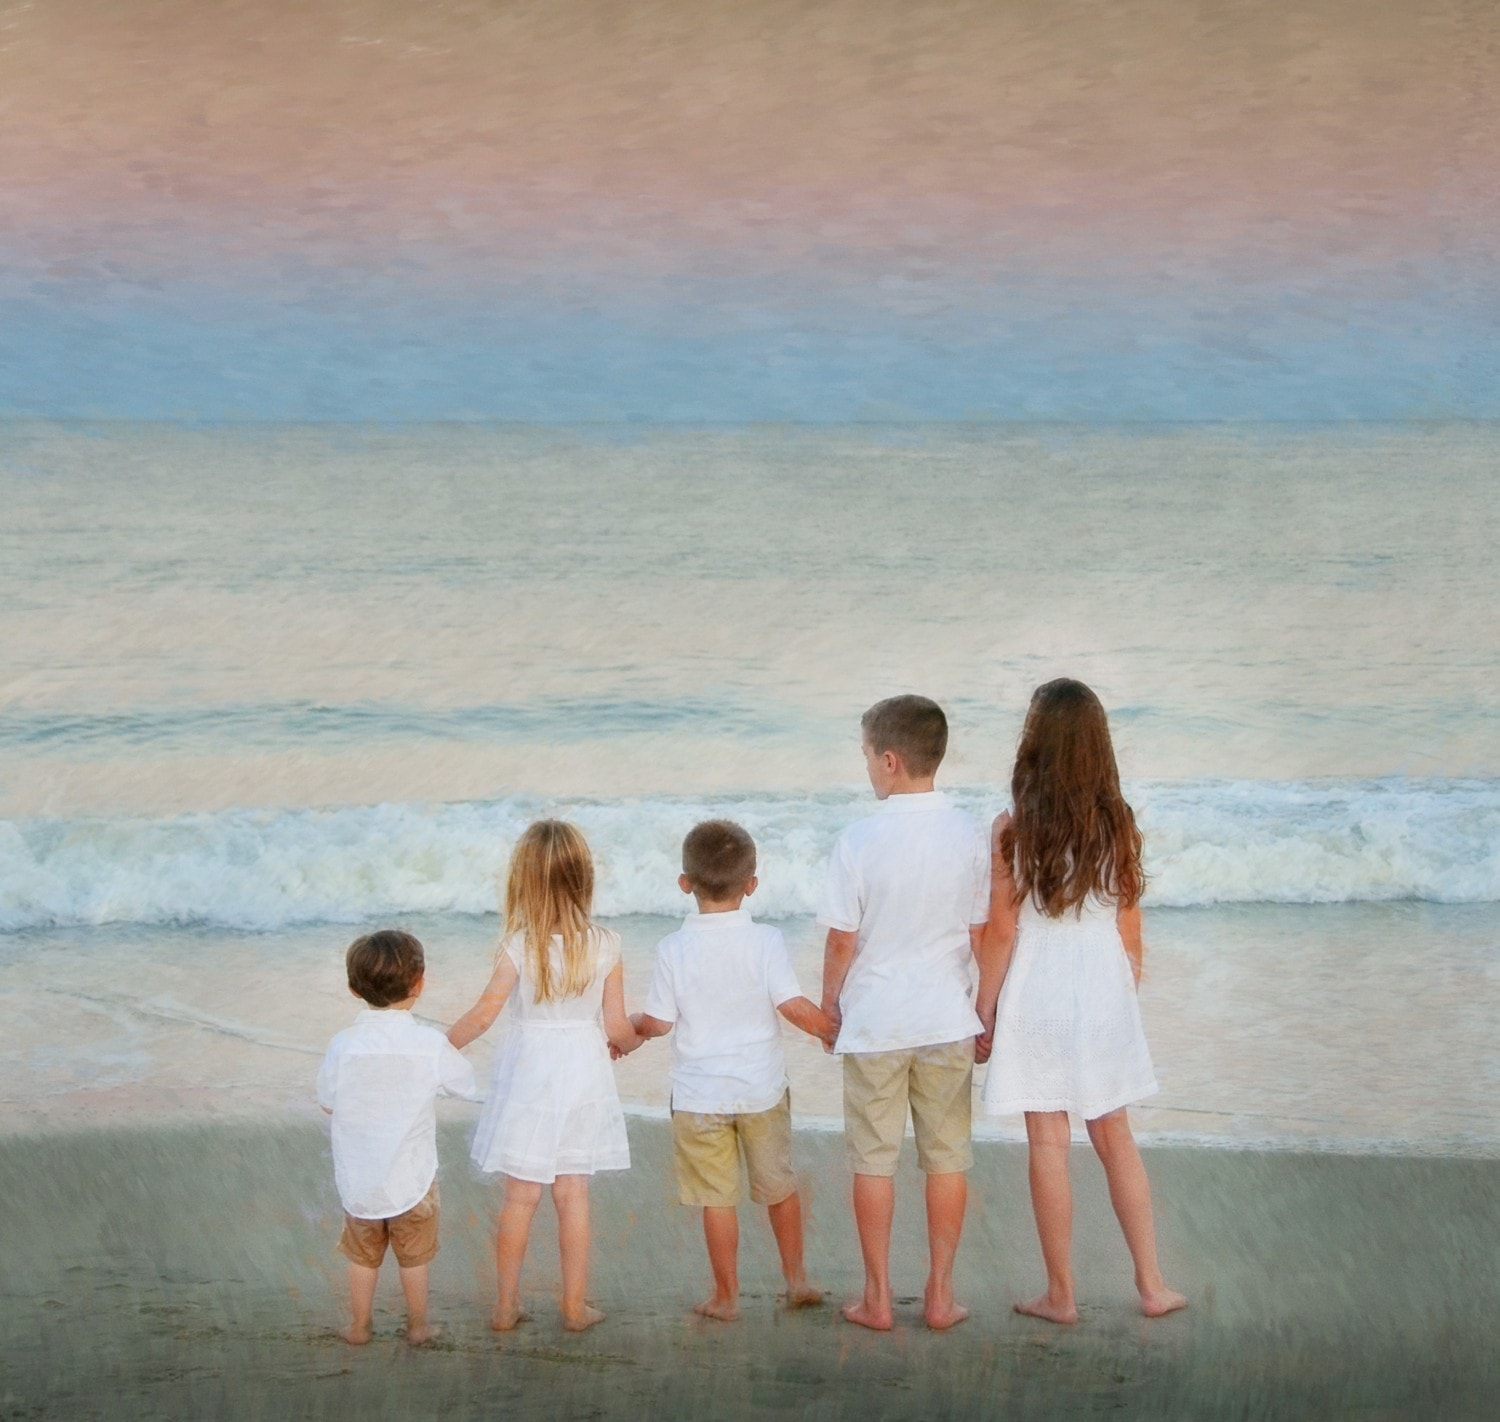 beach family portrait edited